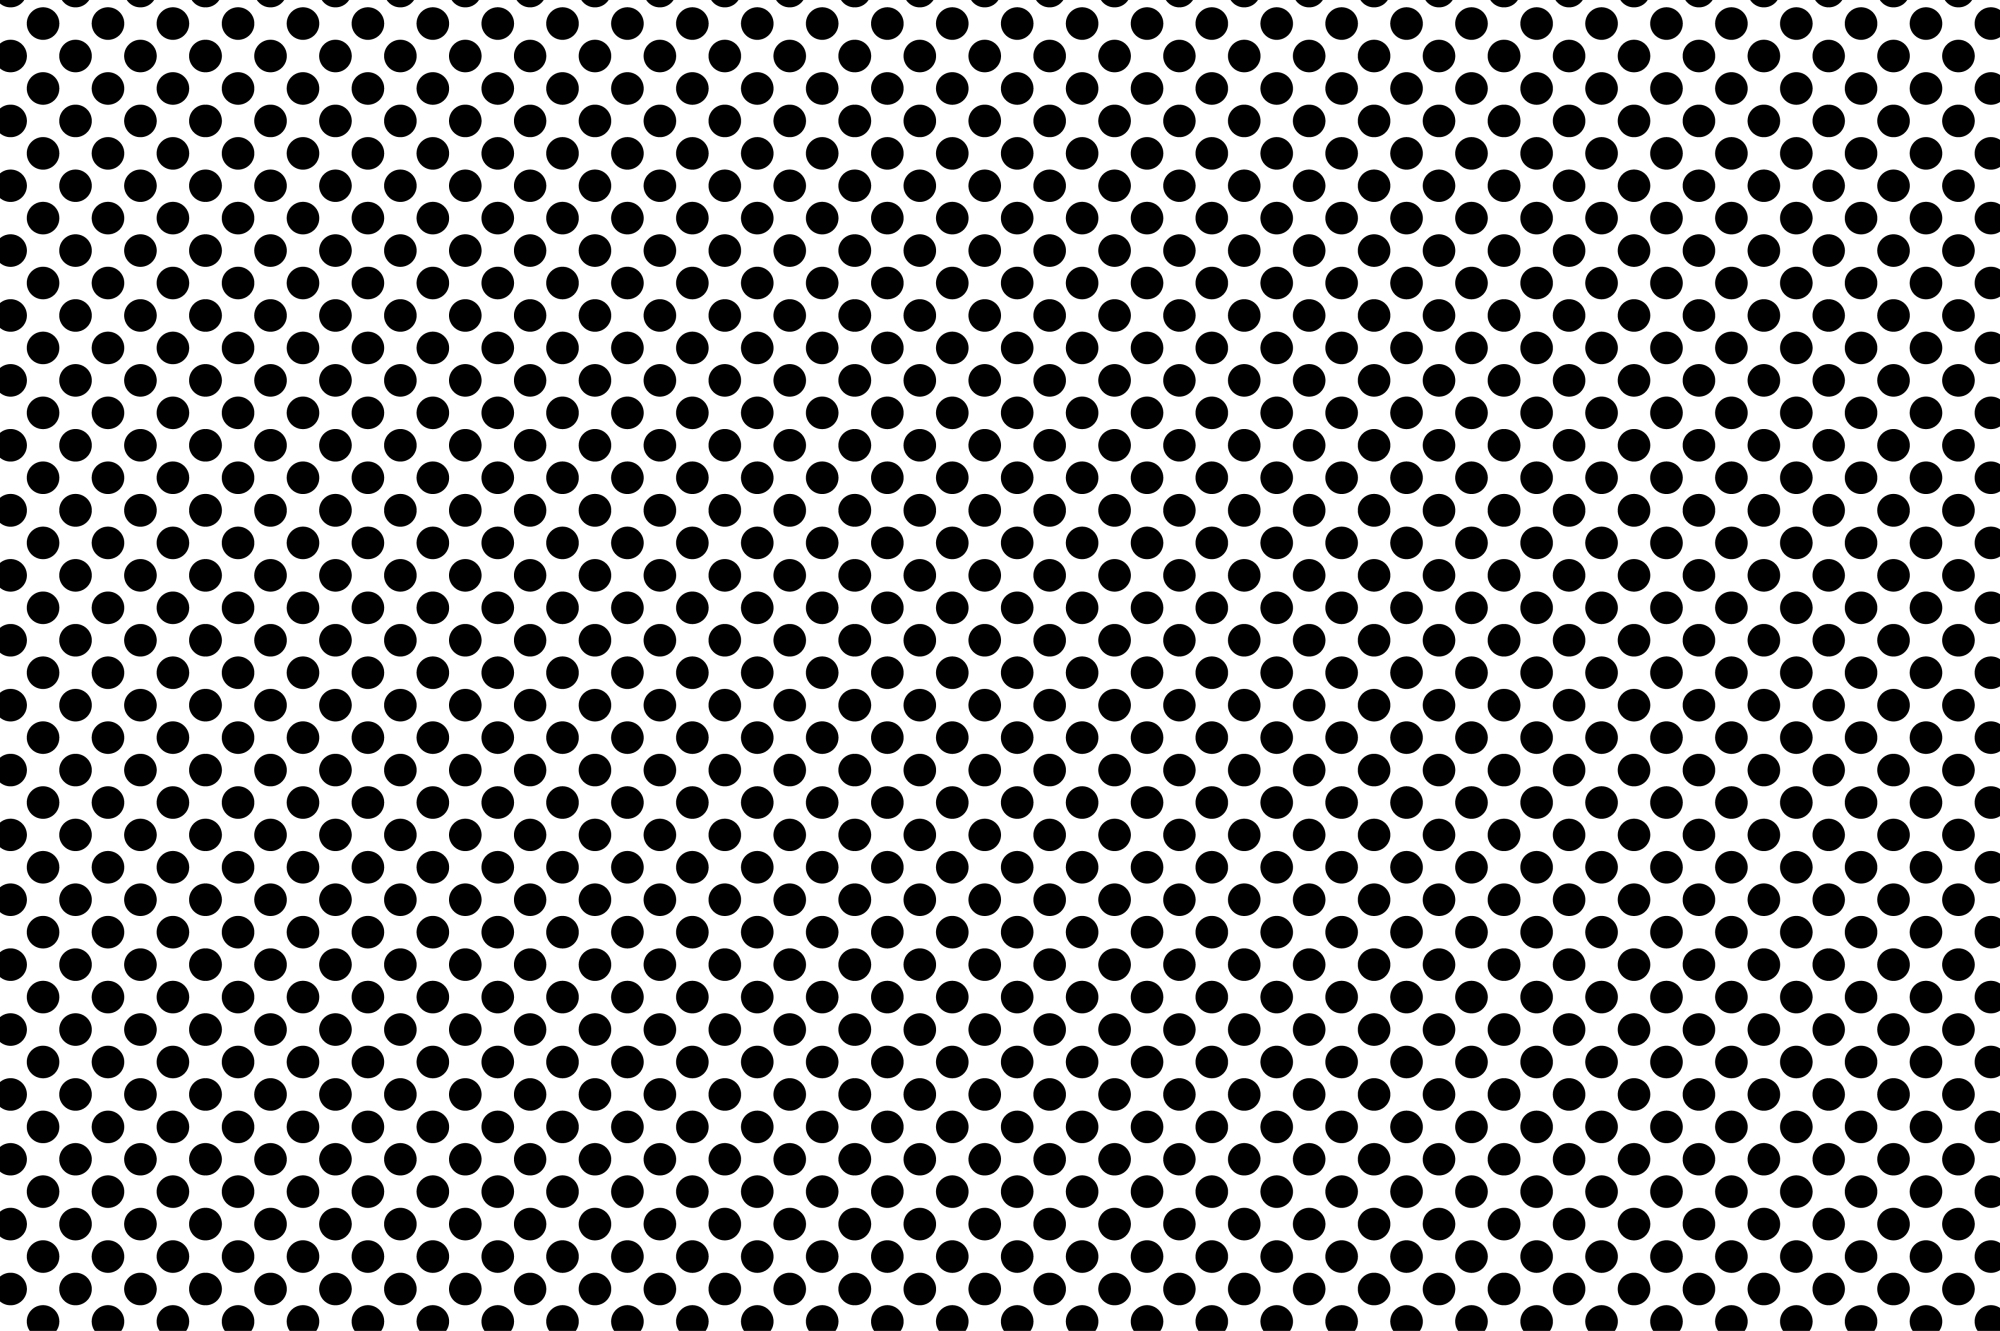 Set of dotted seamless patterns. example image 18